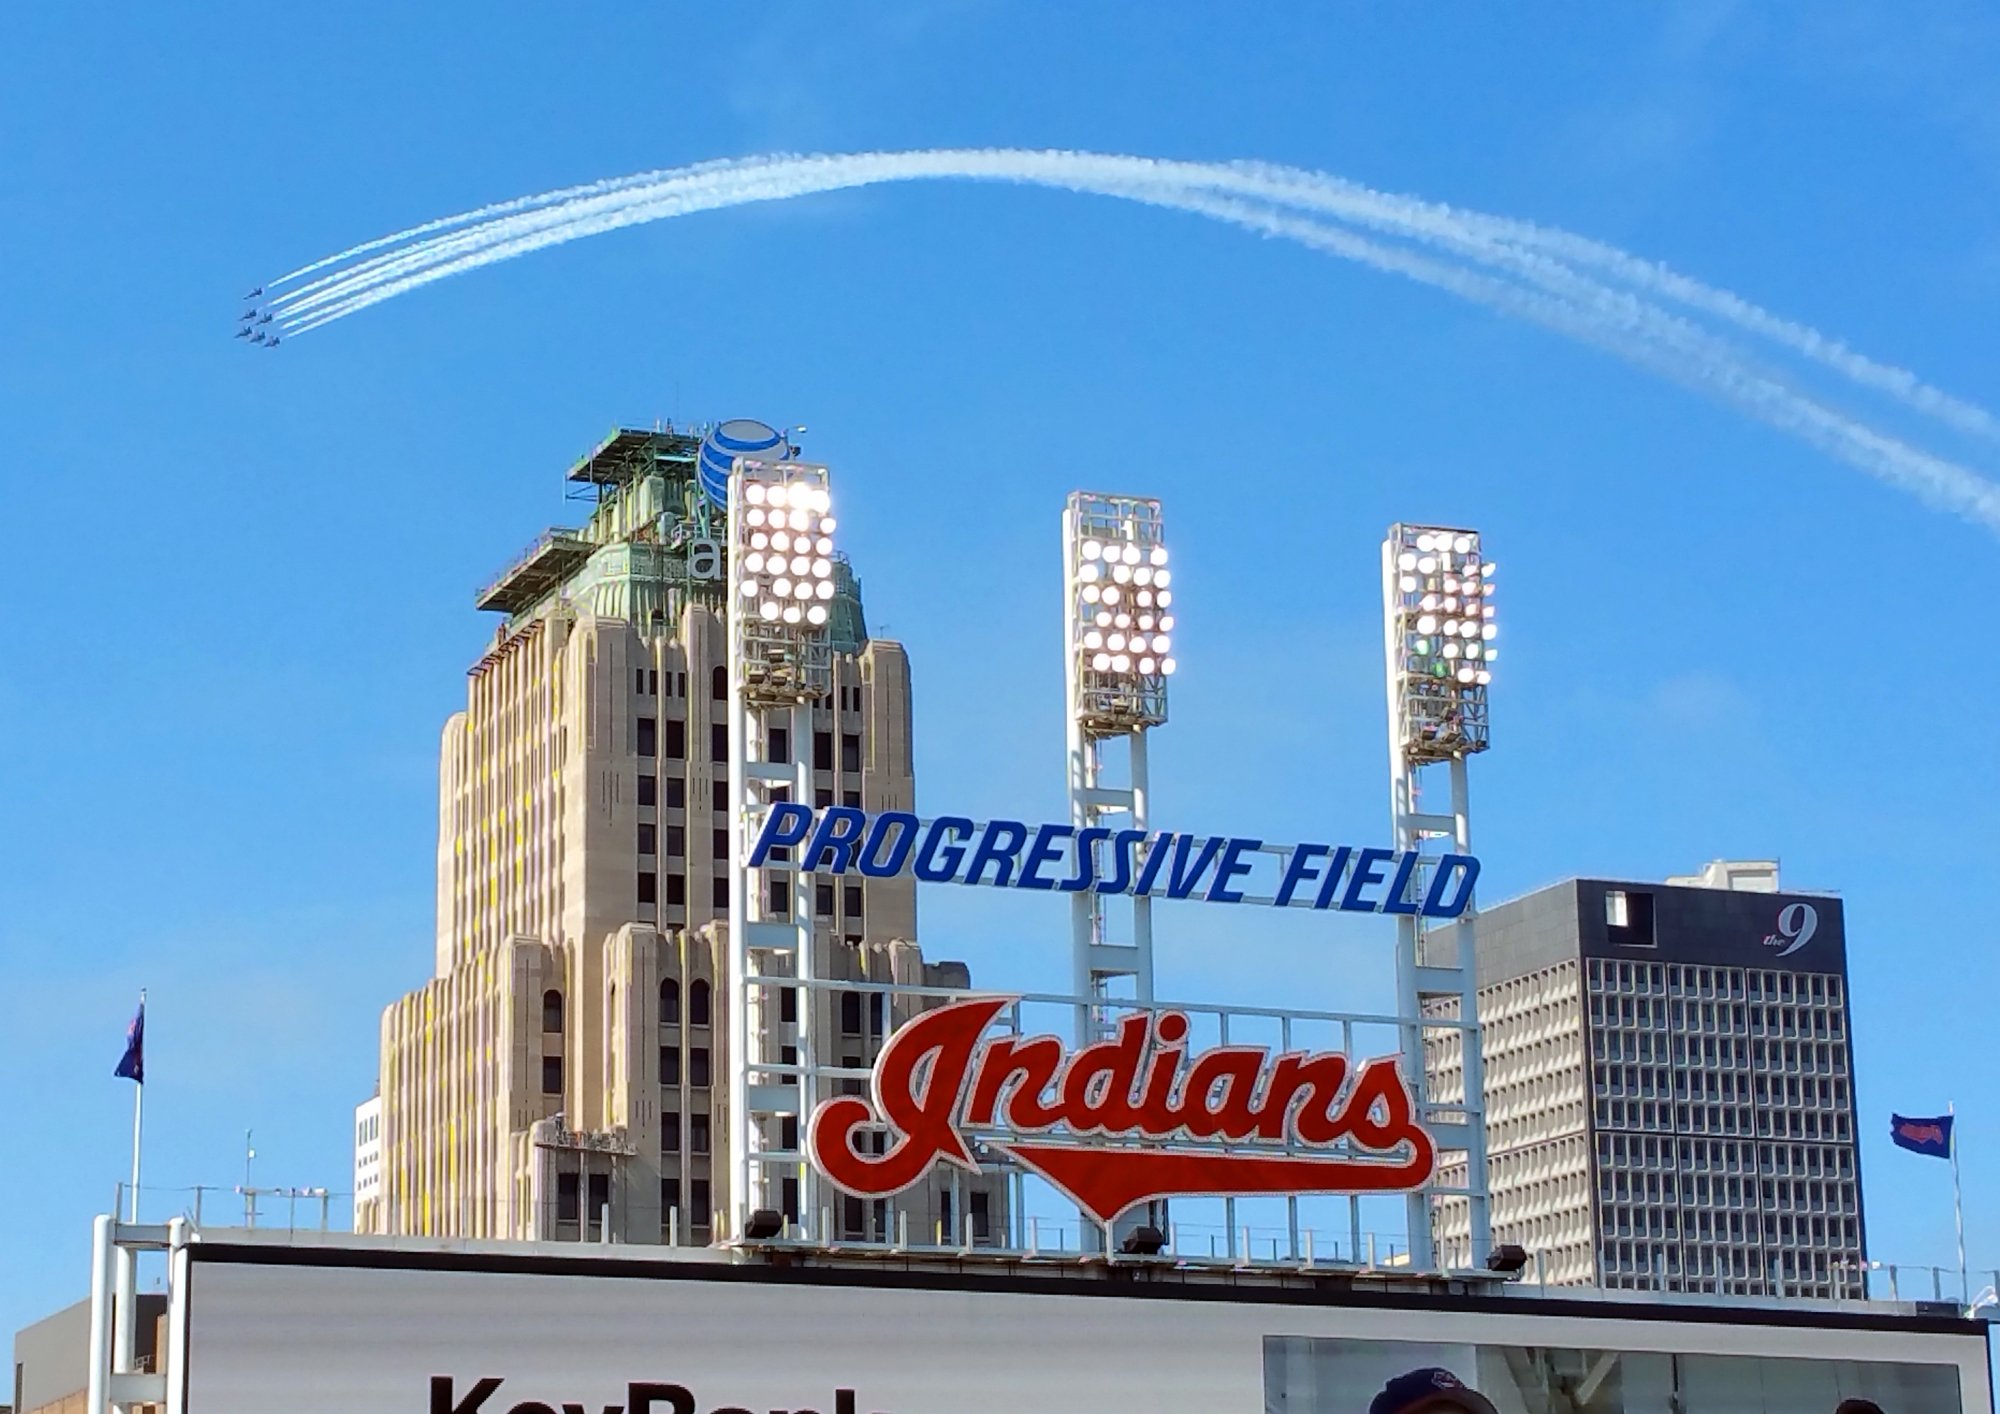 cleveland-baseball-blue-angels